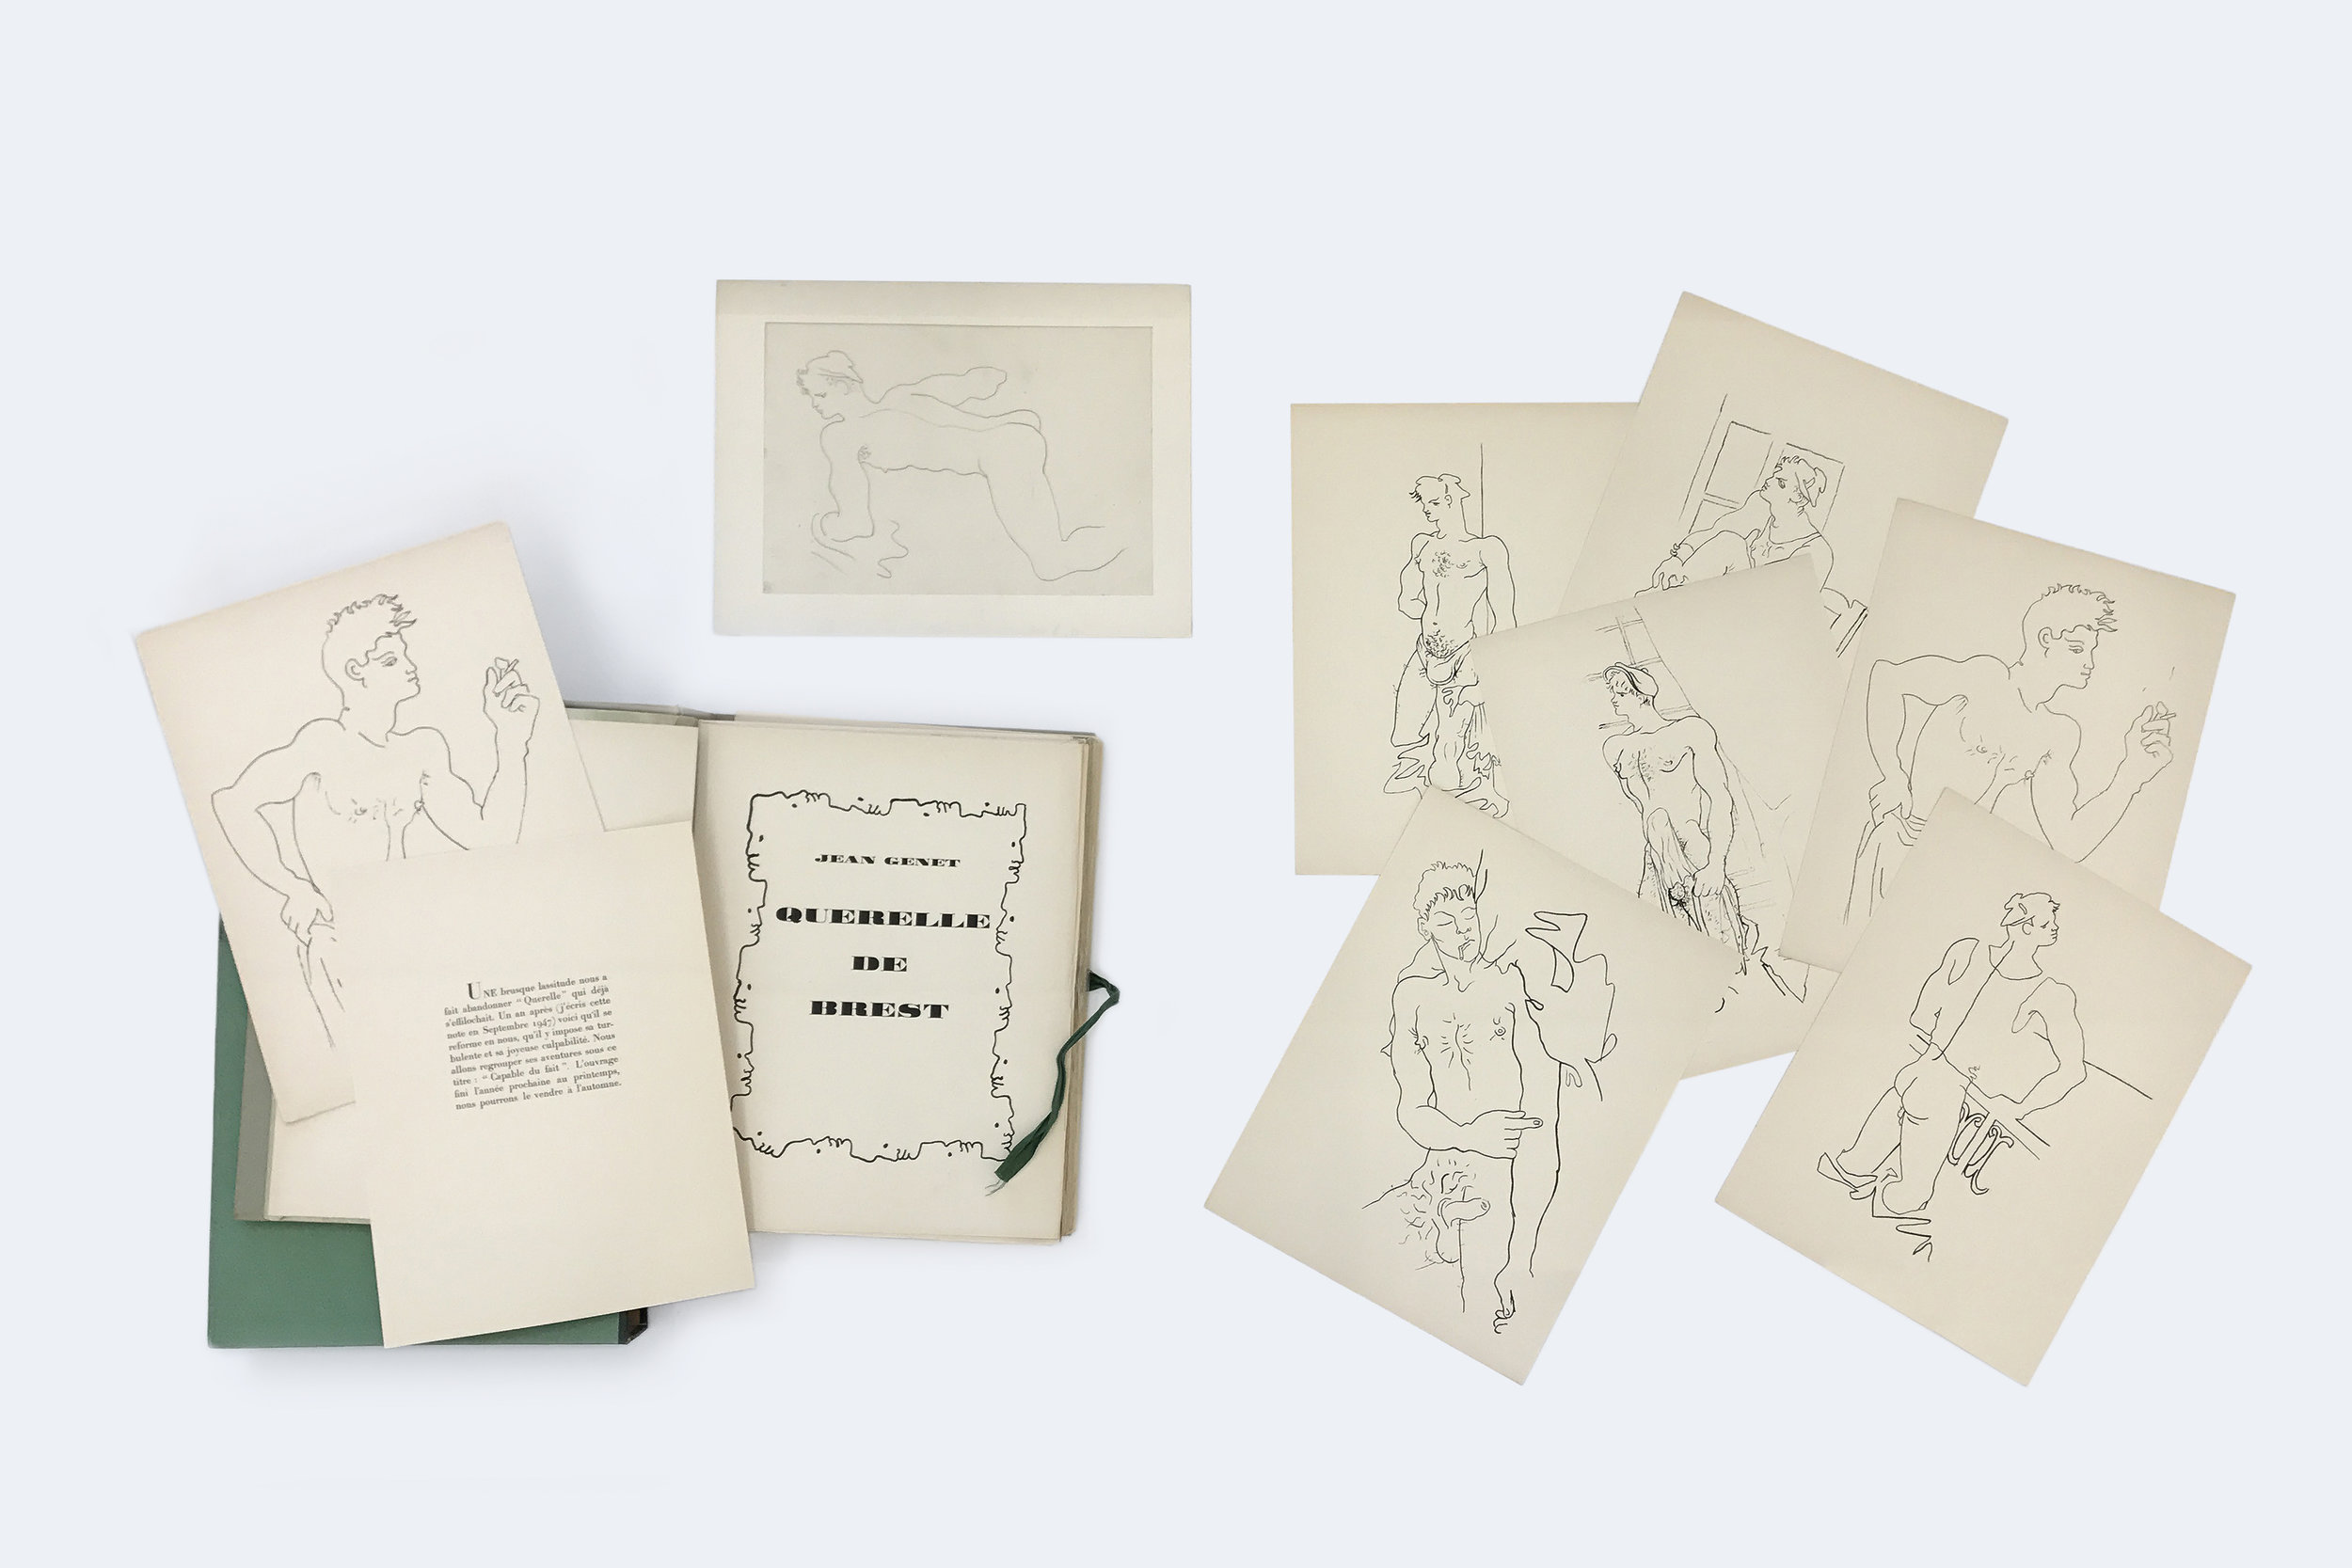 Jean Genet, Querelle de Brest, 1948 text from Jean Genet illustrated by Jean Cocteau on vellum. accompanied by an original pencil drawing and a suite of 29 illustrations in cloth bound green book-case edition of 15 32,5 x 25 x 5 cm - 12 25/32 x 9 27/32 x 1 31/32 inches